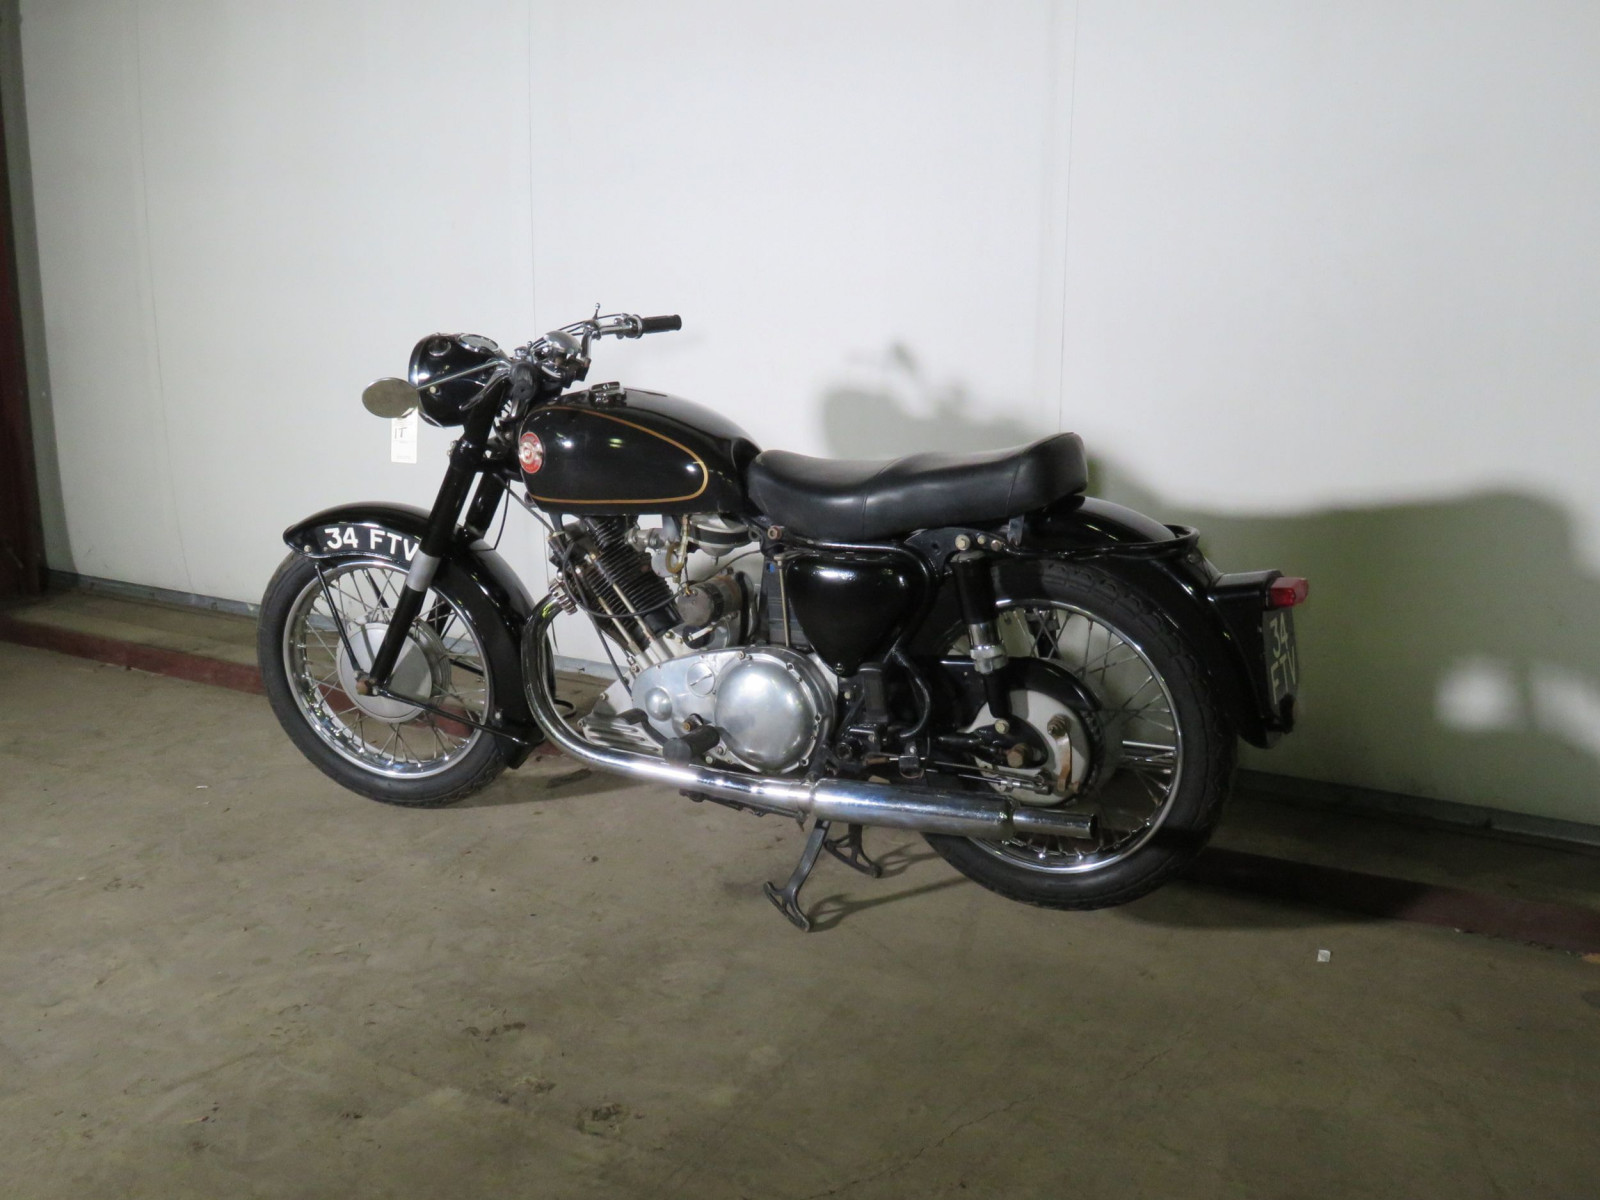 1959 Panther Model 120 Motorcycle - Image 6